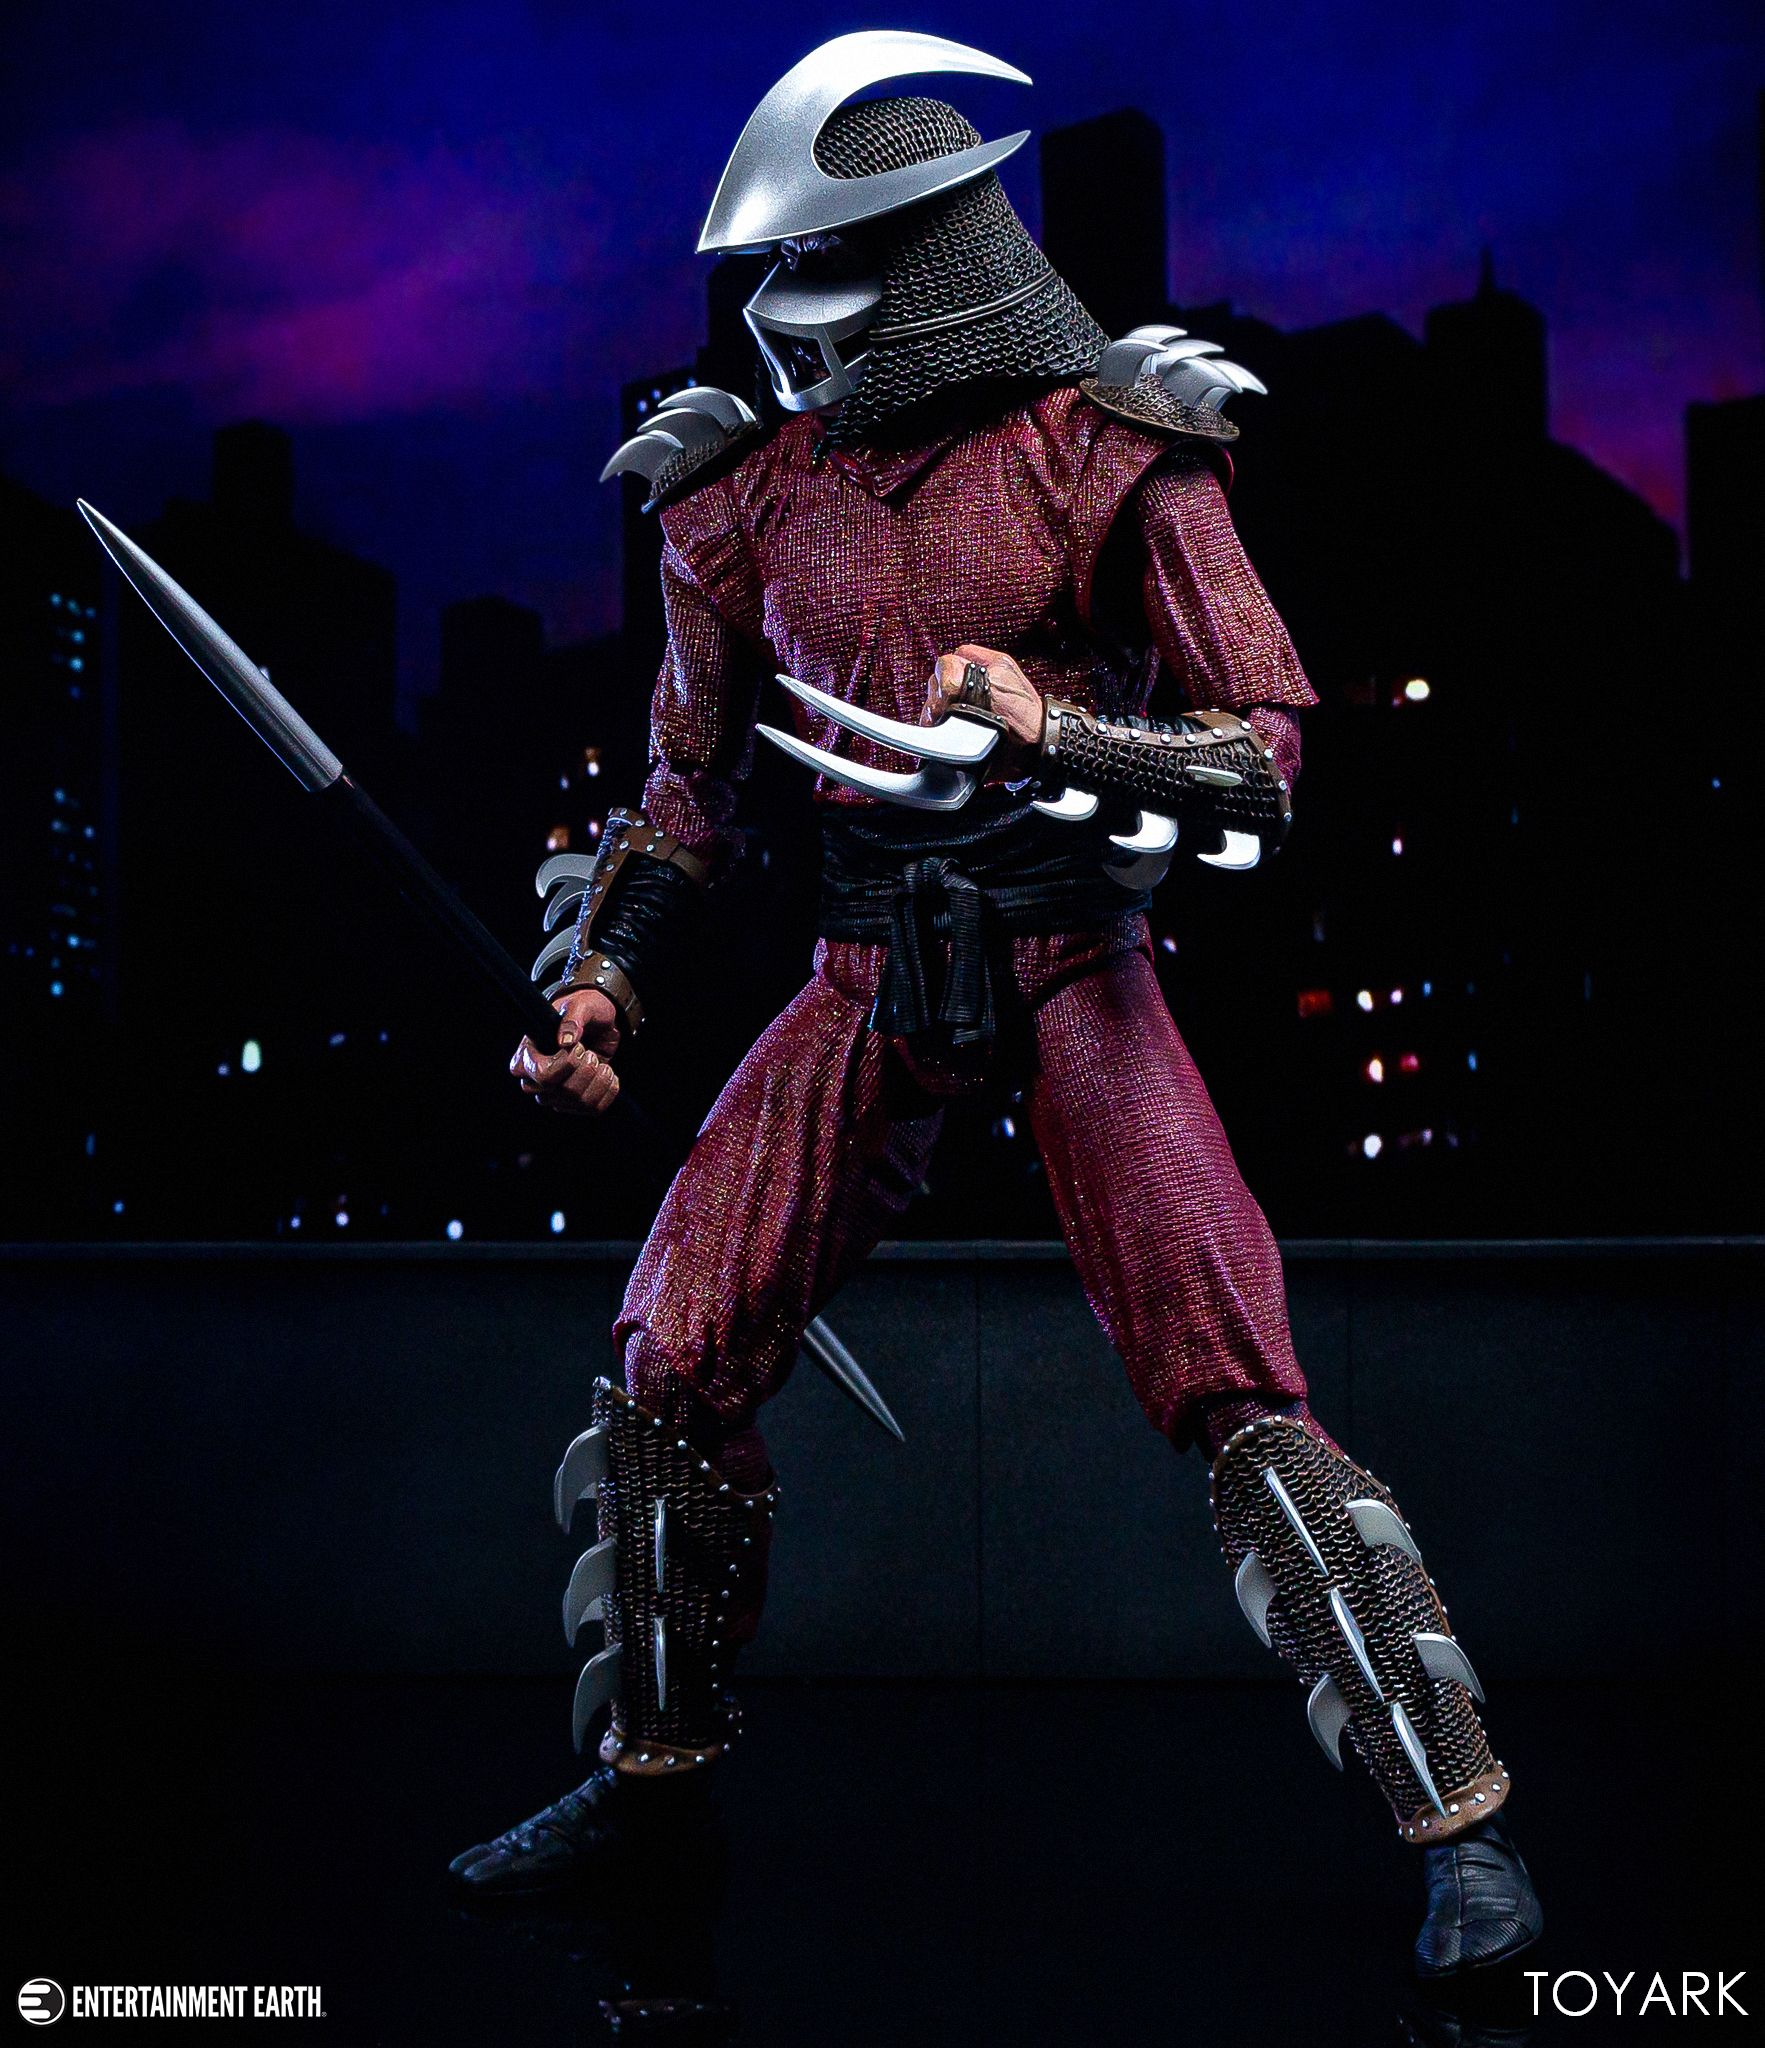 https://news.toyark.com/wp-content/uploads/sites/4/2019/06/NECA-1990-TMNT-Shredder-030.jpg